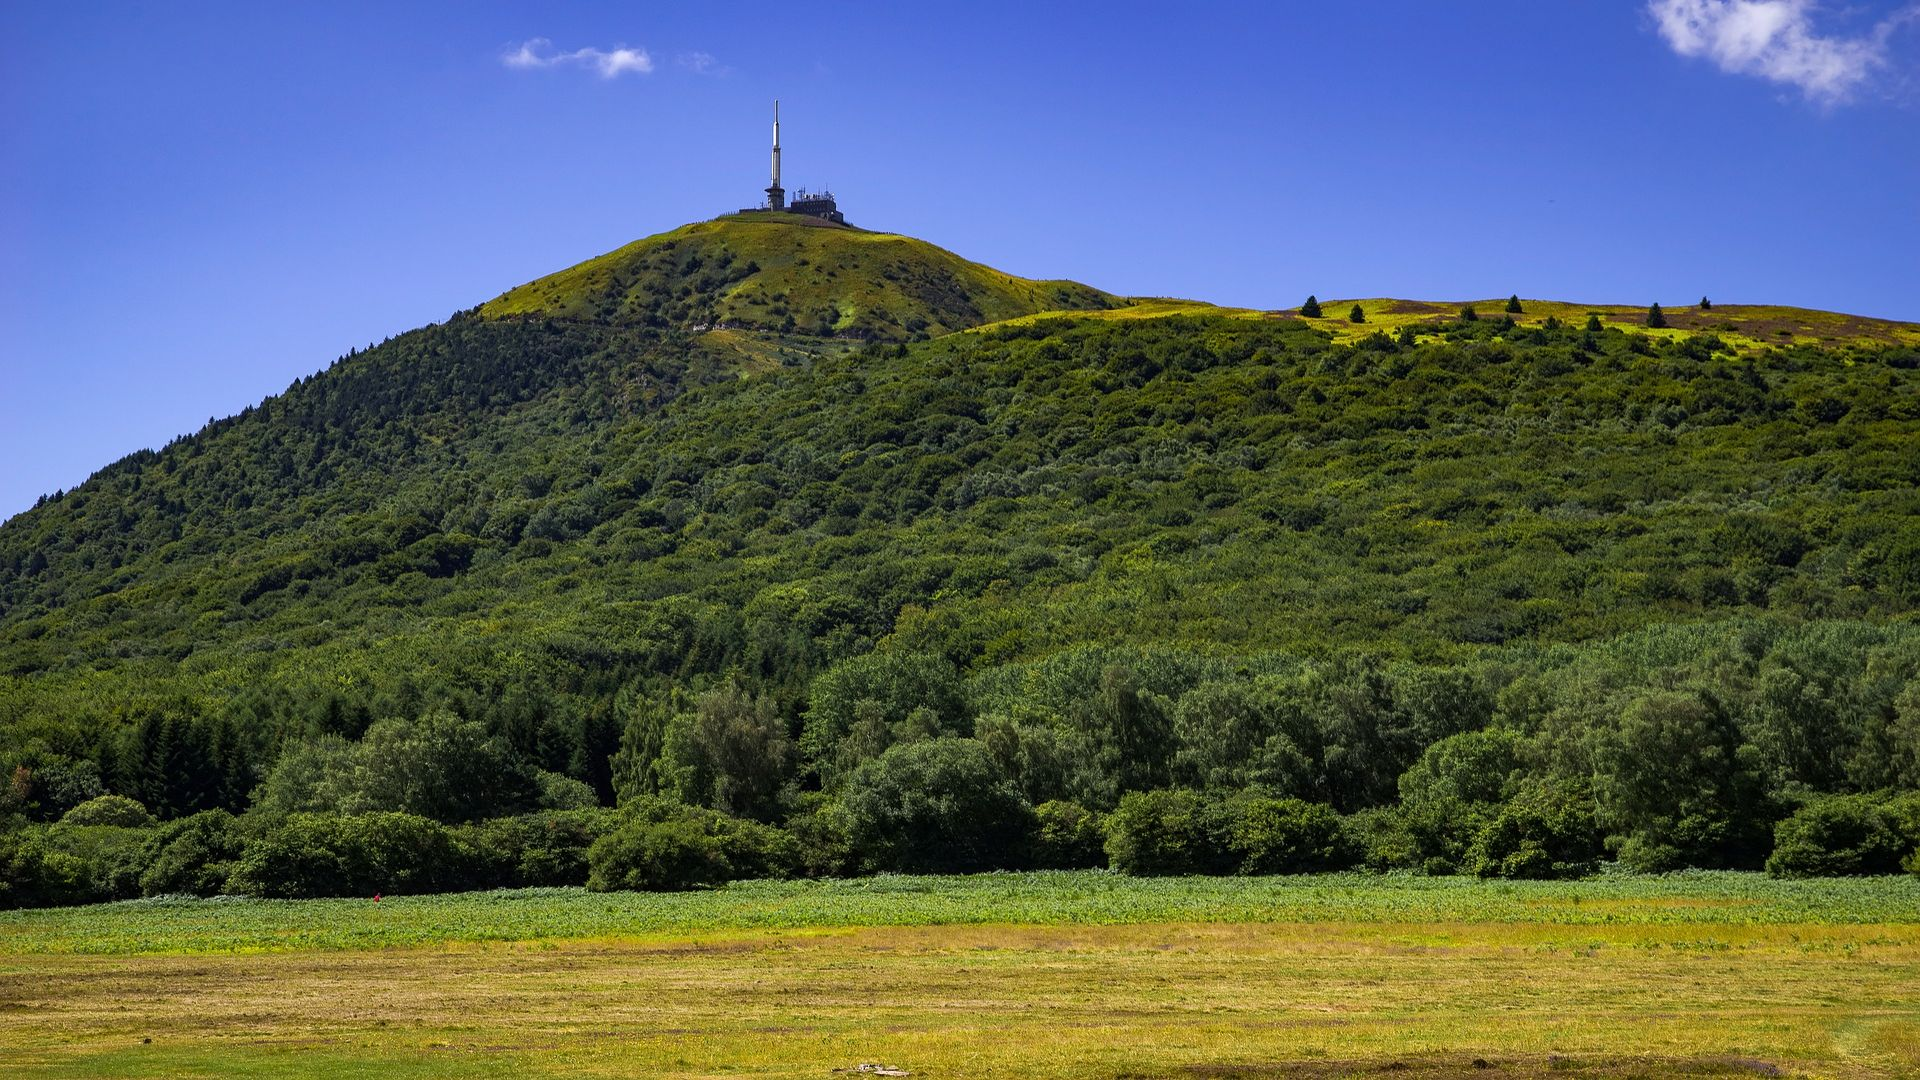 FRENCH VOLCANOES IN AUVERGNE